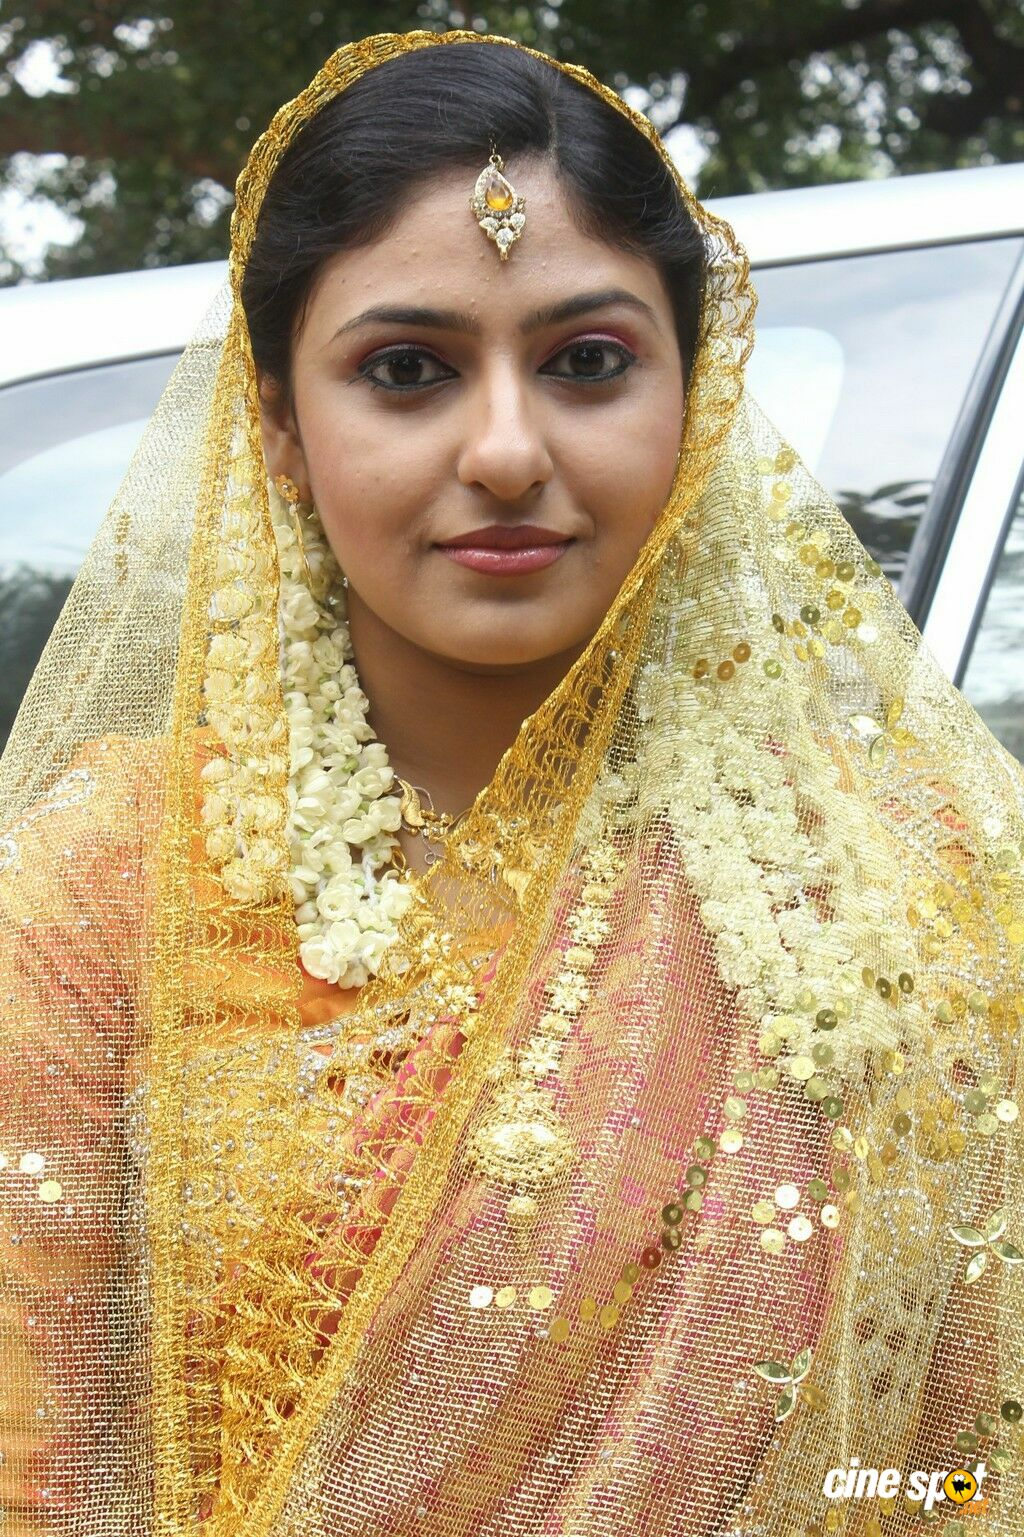 Dubai Beautiful Girl Wallpaper Monica Rahima Wedding Photos 7